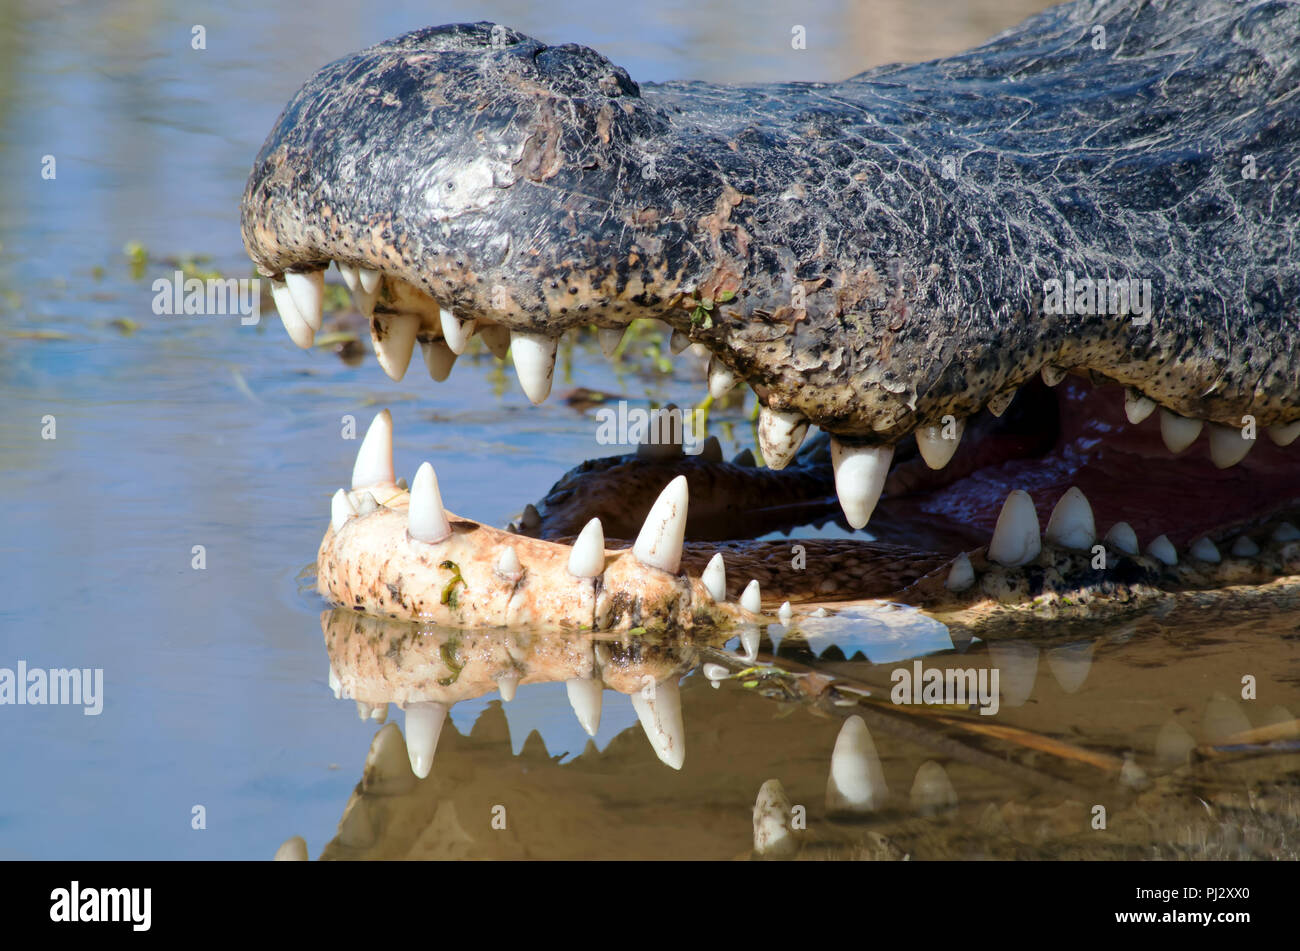 A close shot of the snout of an American Alligator showing teeth reflected in the marsh water. Leonabelle Turnbull Birding Center in Port Aransas, TX. Stock Photo